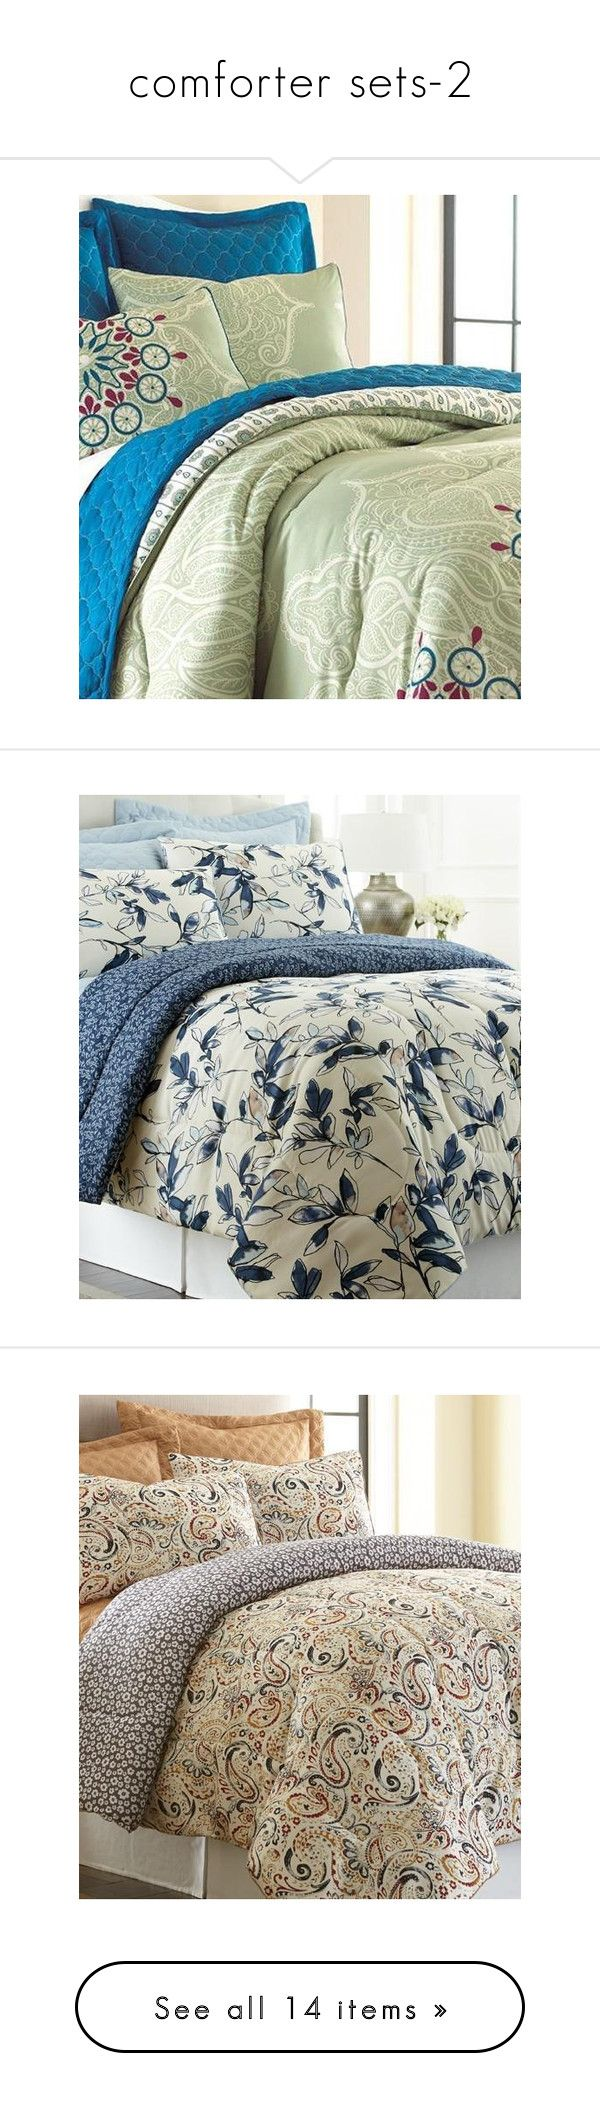 """""""comforter sets-2"""" by rwsummerimports ❤ liked on Polyvore featuring home, bed & bath, bedding, comforters, european pillow shams, euro pillow shams, european sham, european bedding, euro pillow-sham and oversized comforters"""